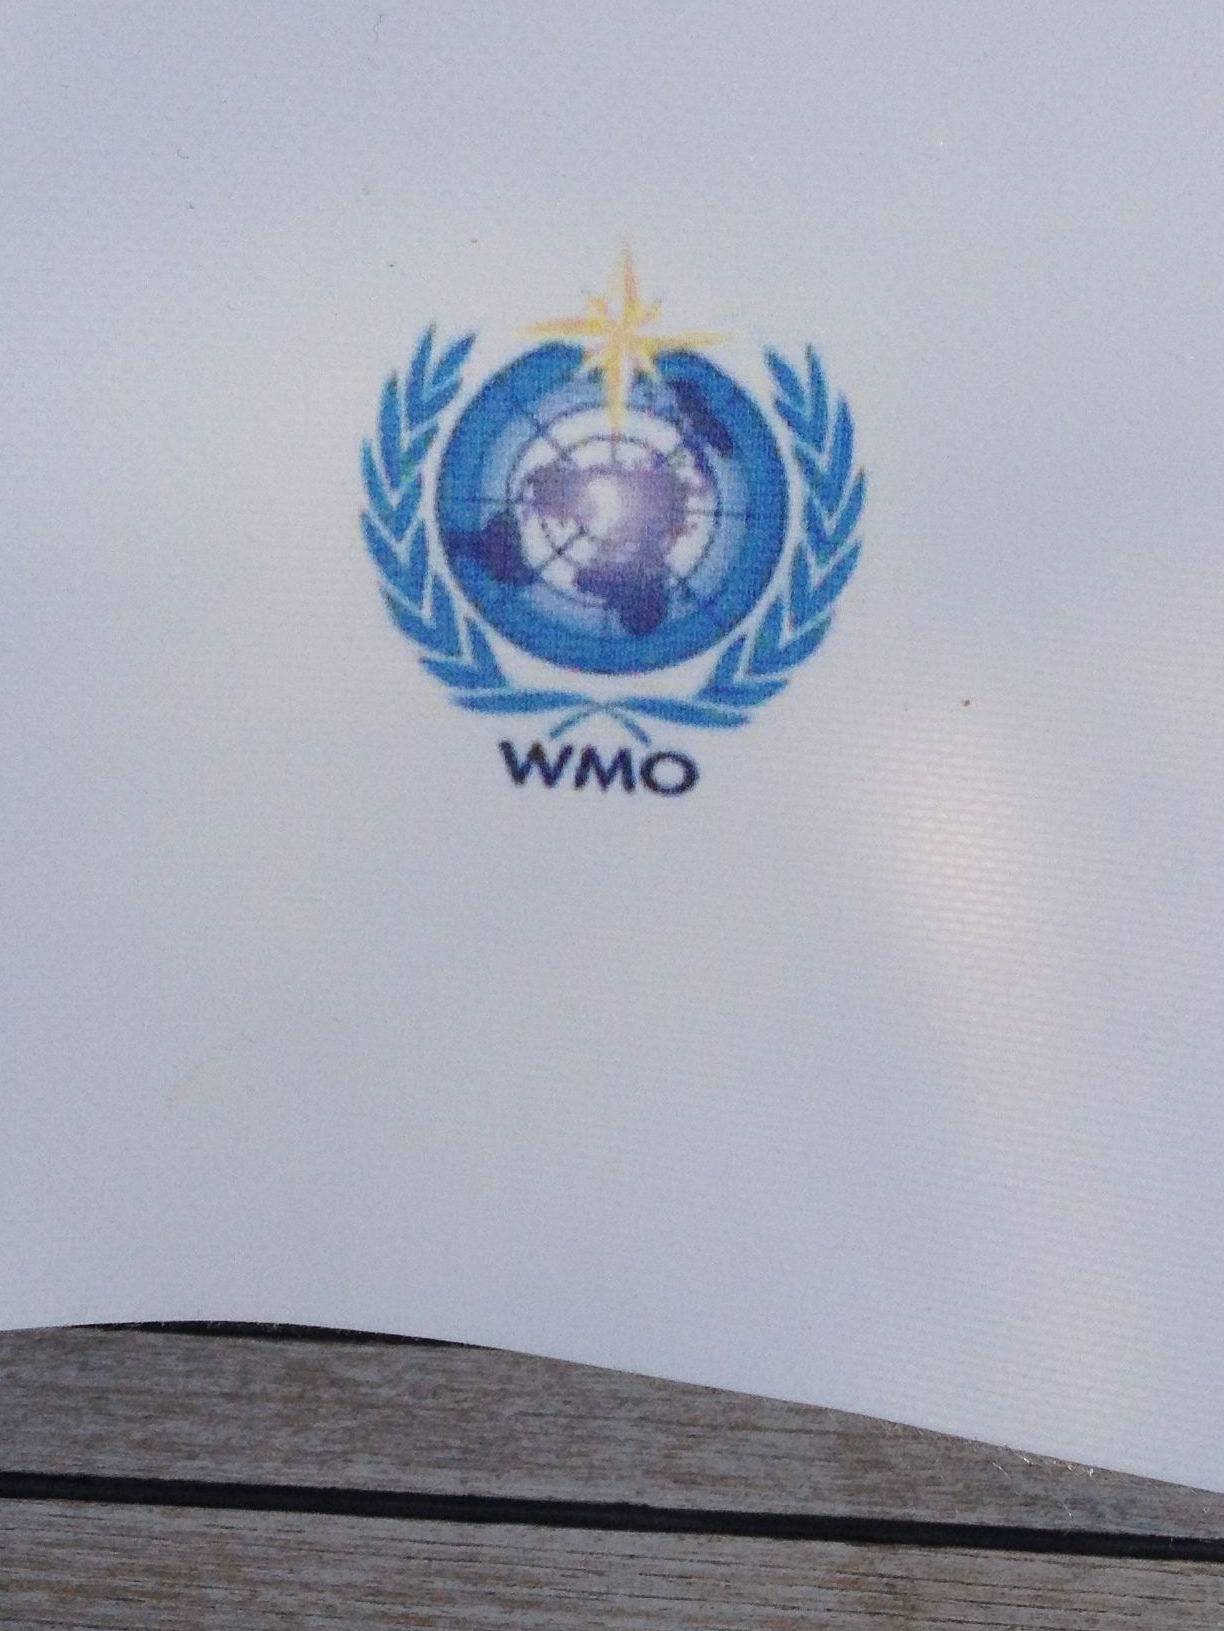 78-the-wmo-the-world-meteorological-organization-partnered-with-the-bpo